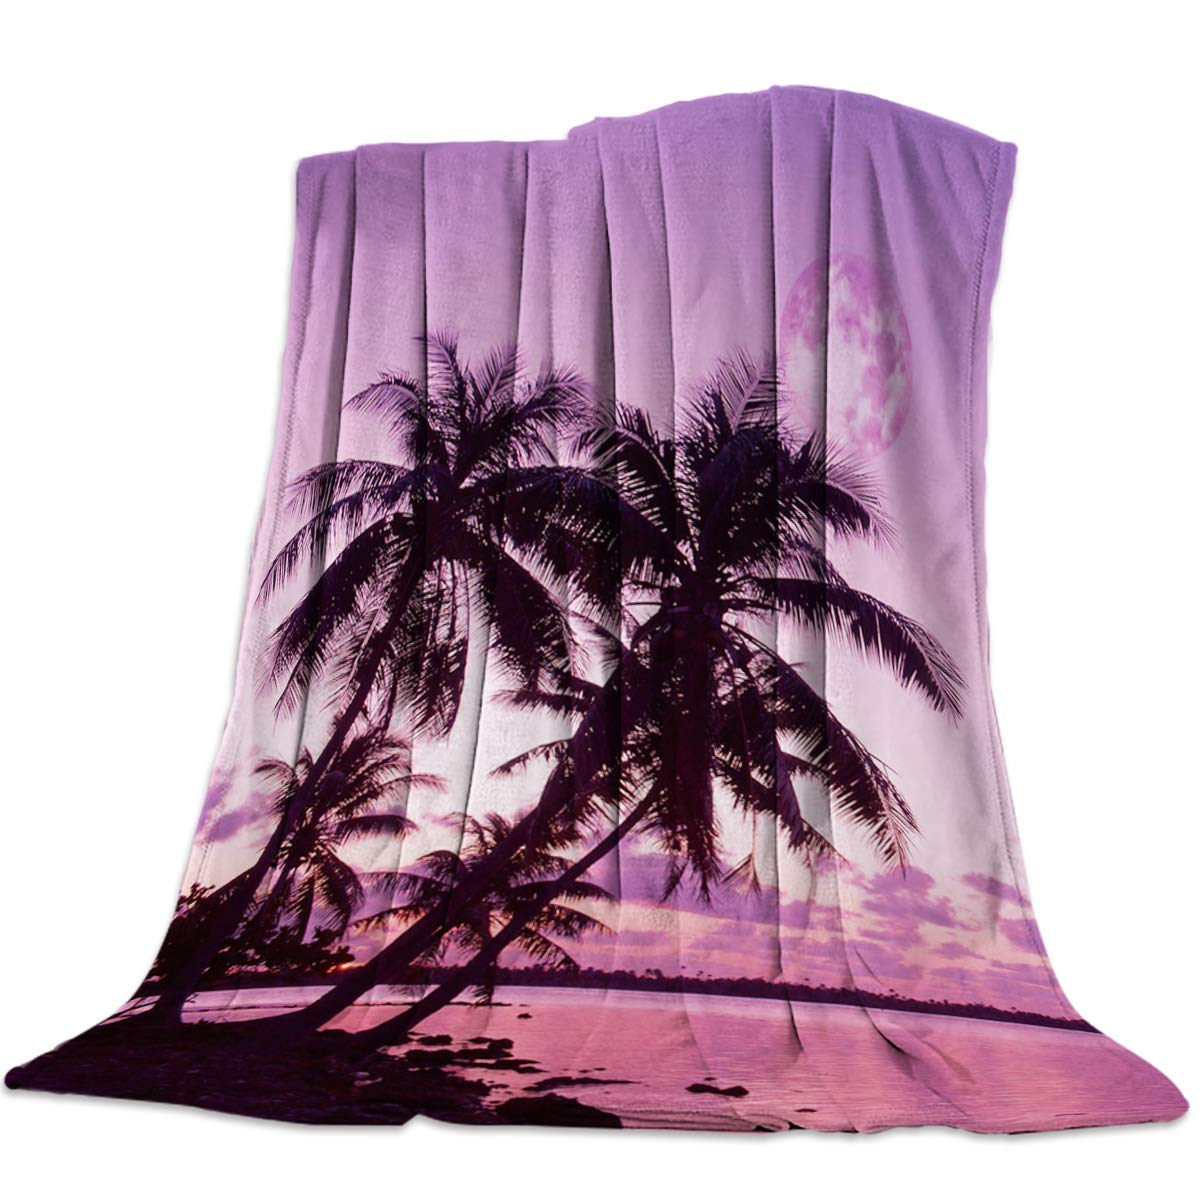 Coconut Beach15yag3688 39x49inch=100x125cm YEHO Art Gallery 49x59 Inch Flannel Fleece Bed Blanket Soft ThrowBlankets for Girls Boys,3D Horse Running in The Prairie,Cozy Lightweight Blankets for Bedroom Living Room Sofa Couch